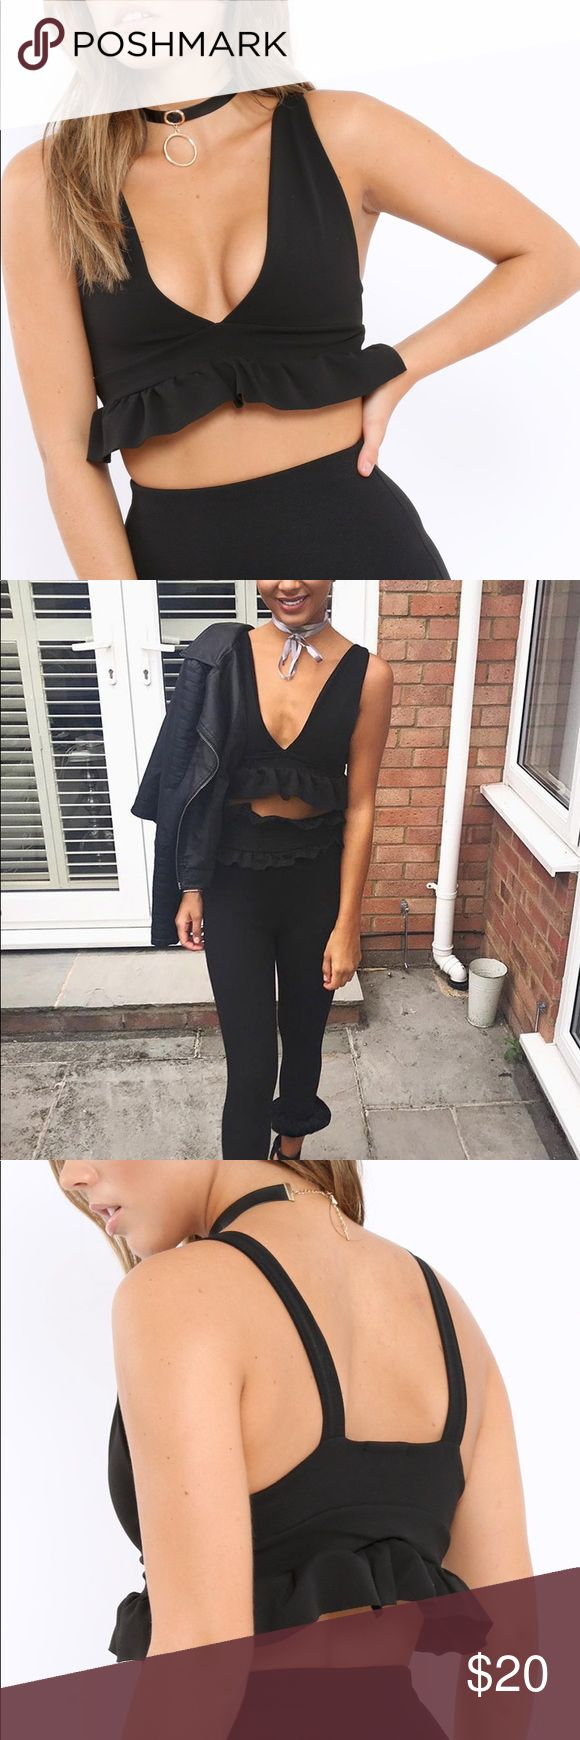 *NEW* Black Frill Hem Crop Top Brand new Without Tags. Look fab in frills this summer in the Keya Black Frill Hem Crop Top! Featuring plunge neckline and a frill hem. Wear with denim shorts and some wedges for the ultimate summer nights look. Size UK 6, so it's an XS. Missguided Tops